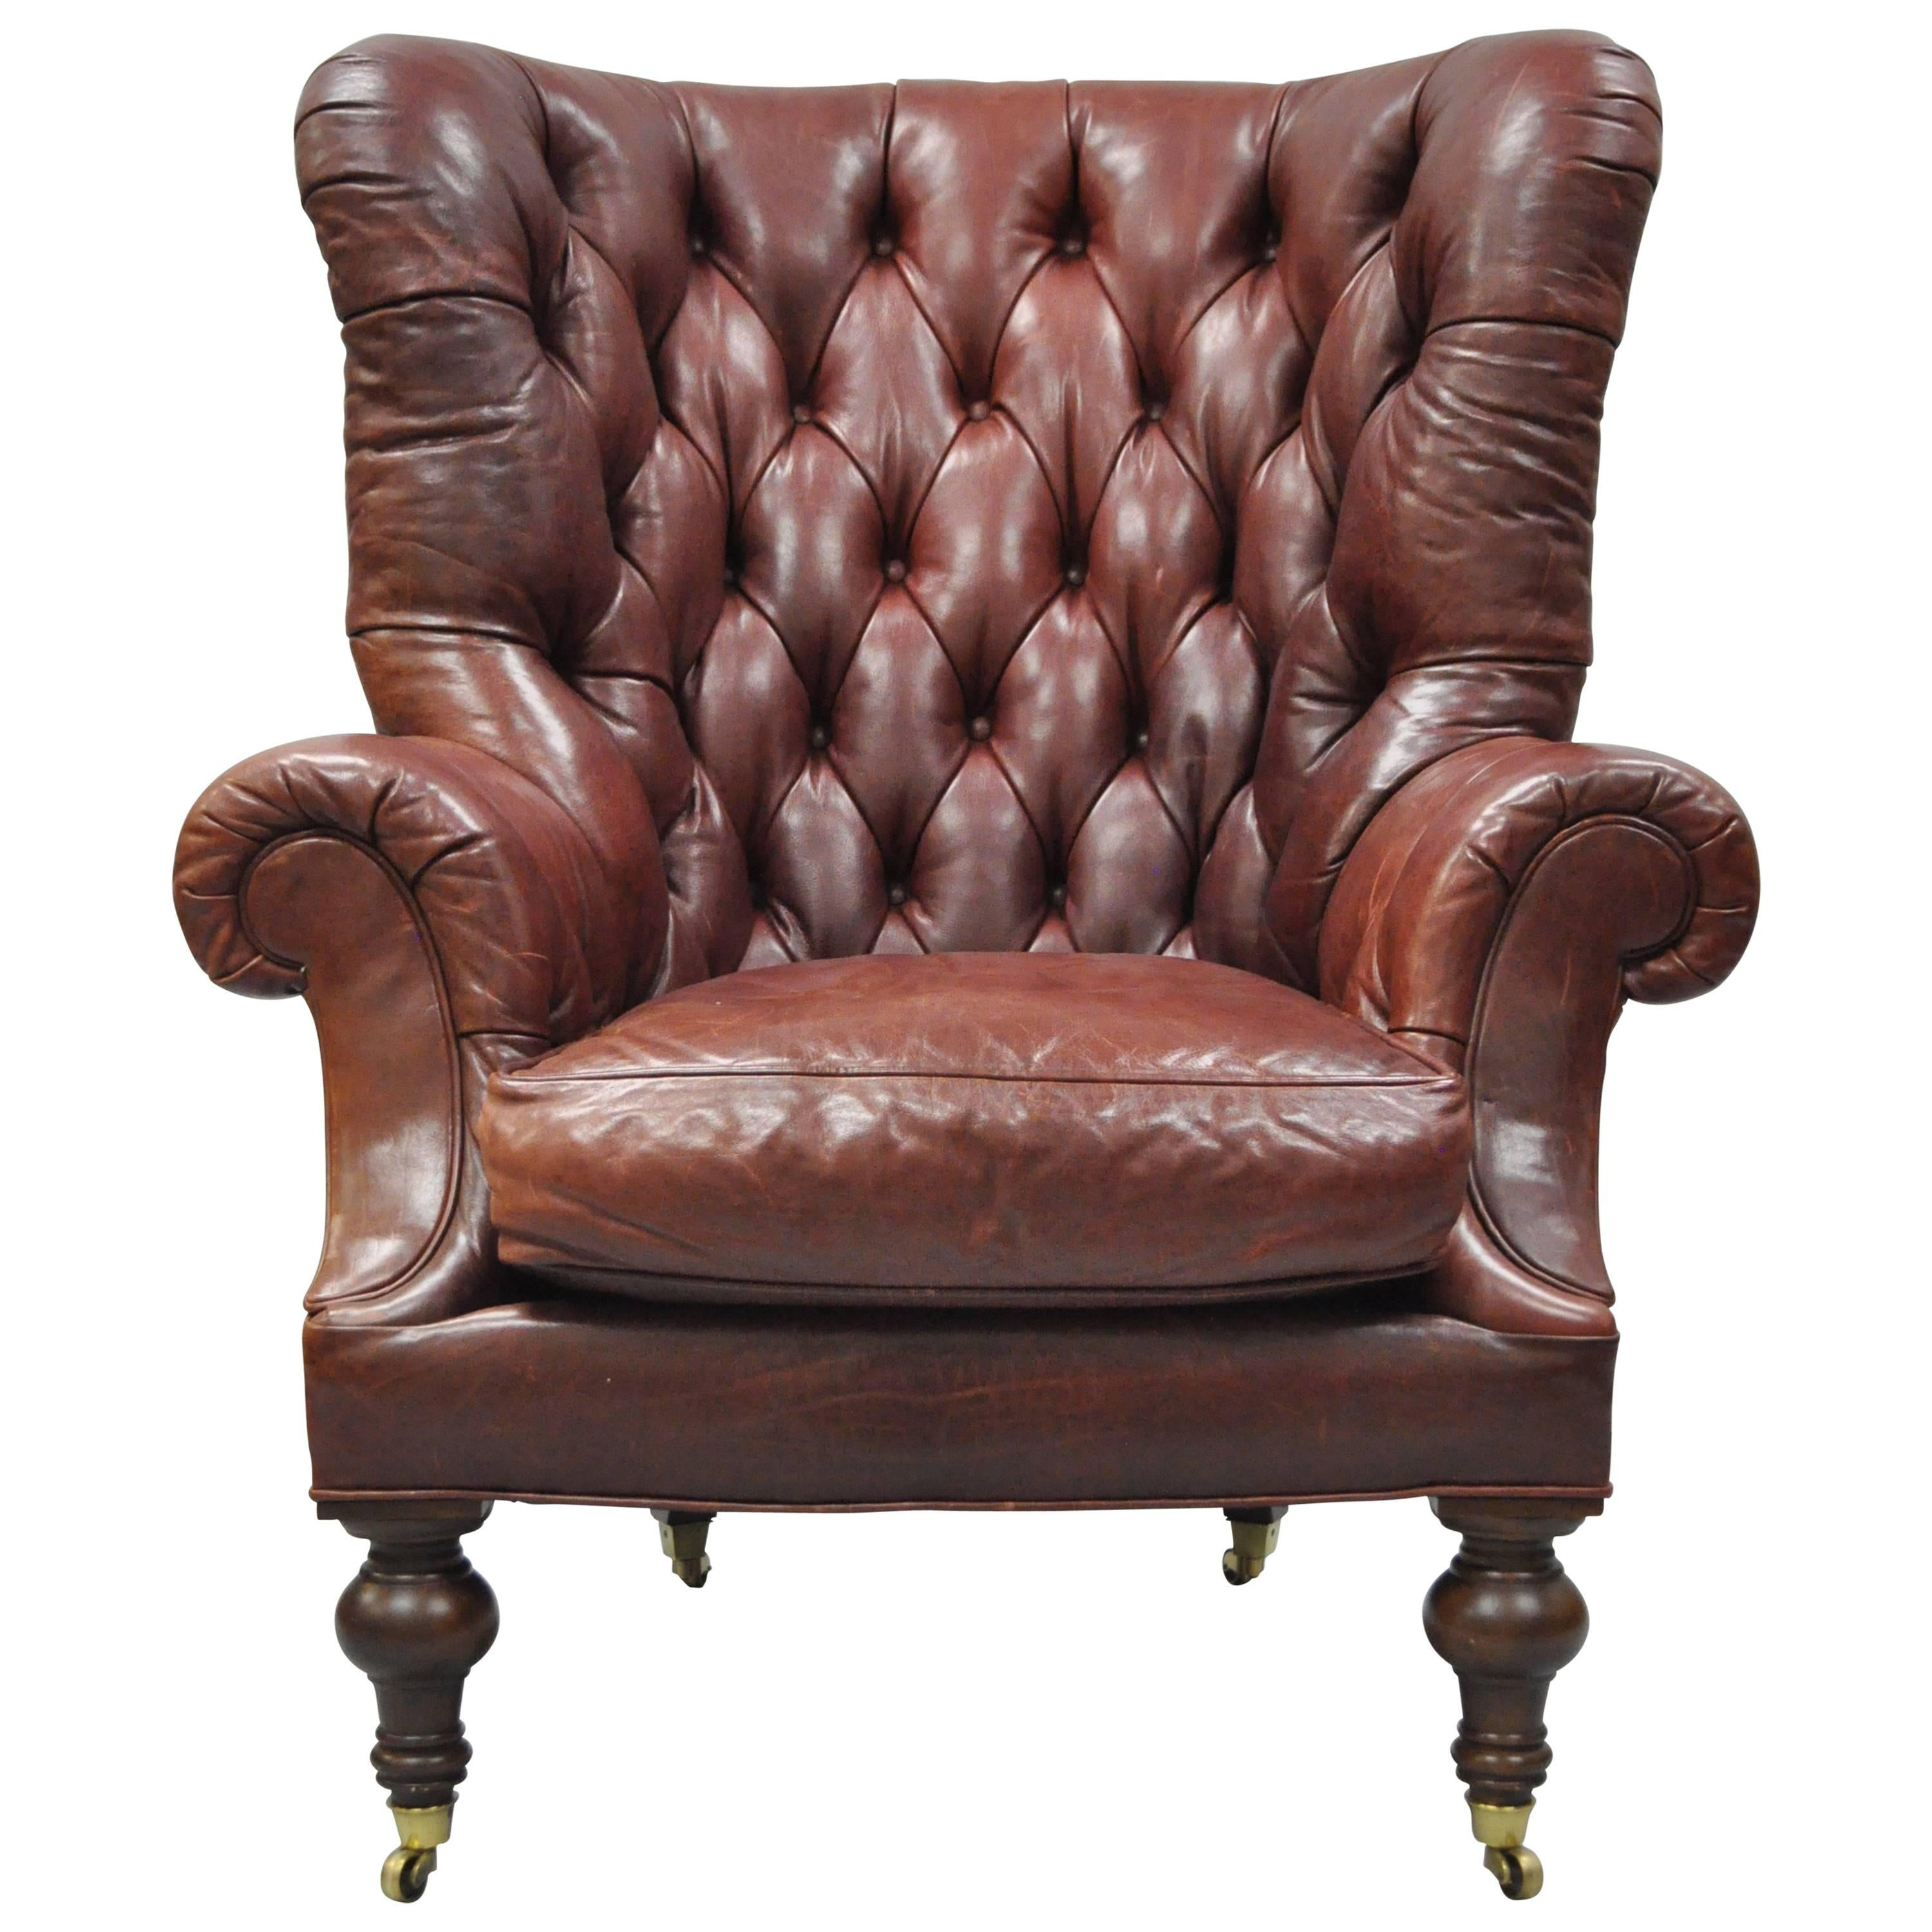 Brown Leather Chairs Oversized Lillian August Brown Tufted Leather English Chesterfield Wing Chair